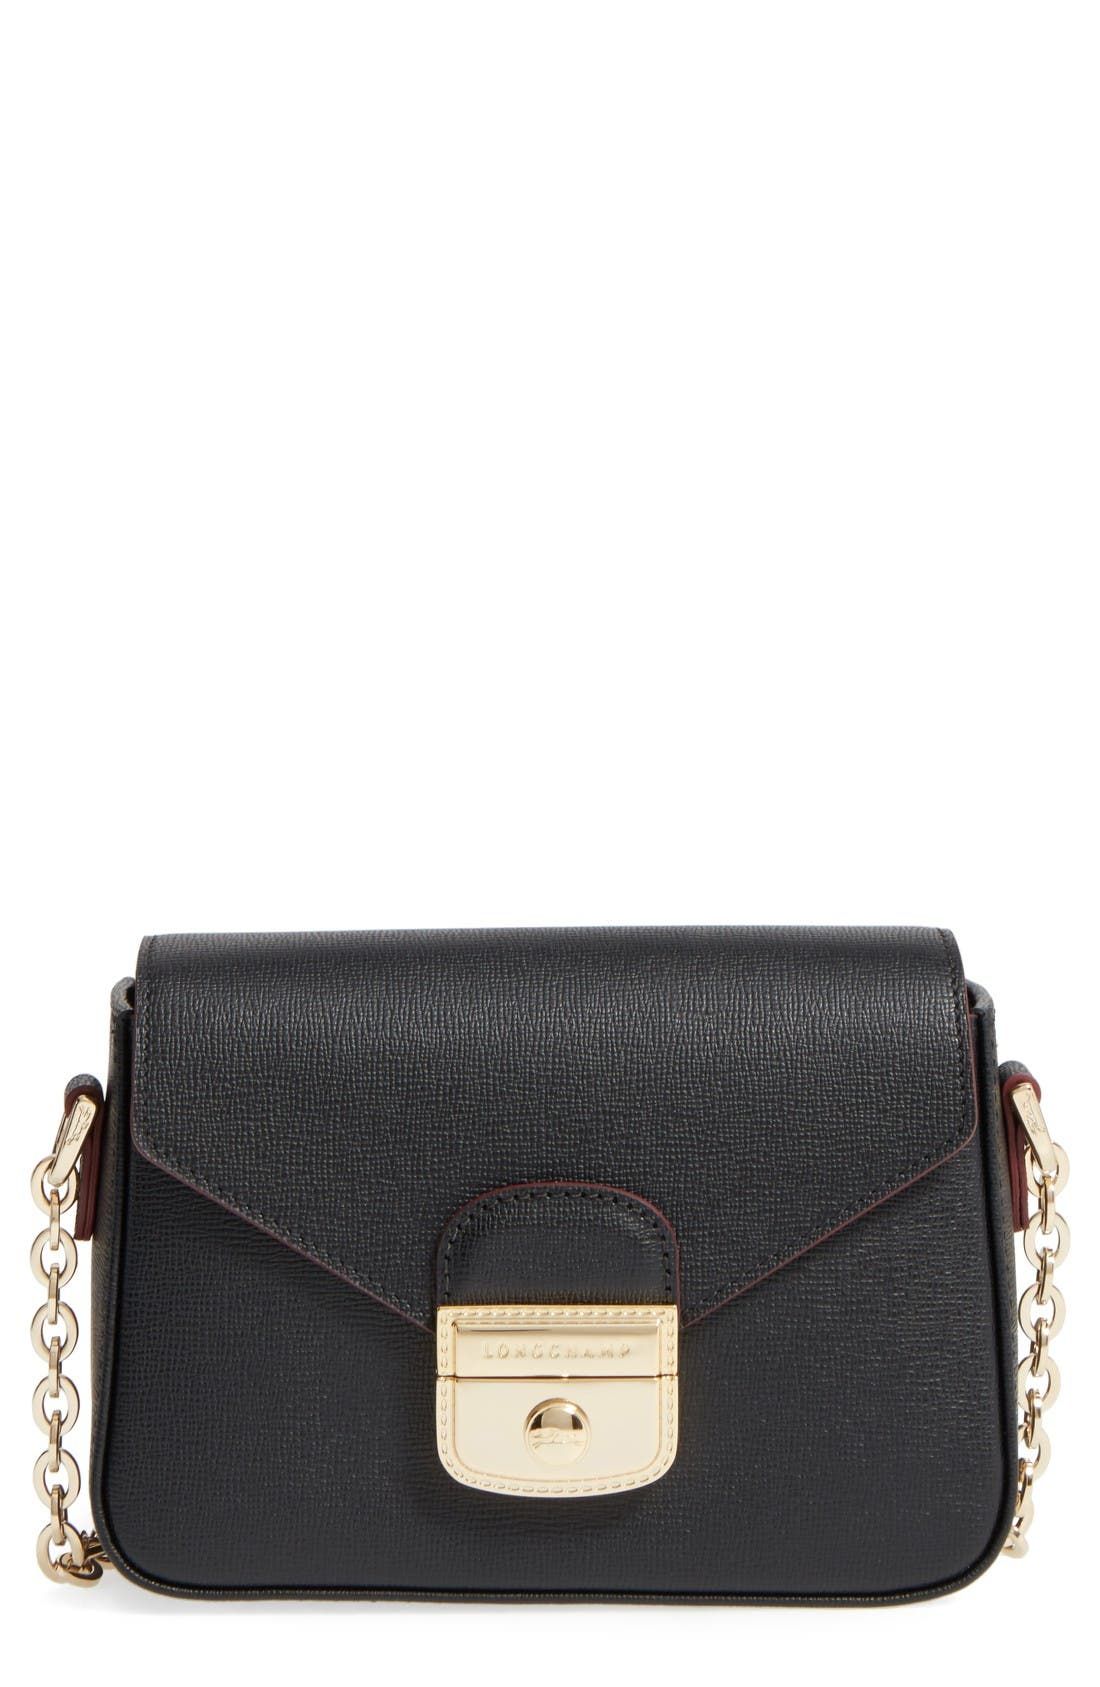 Small Le Pliage Heritage Leather Extra Small Crossbody Bag,                             Main thumbnail 1, color,                             Black